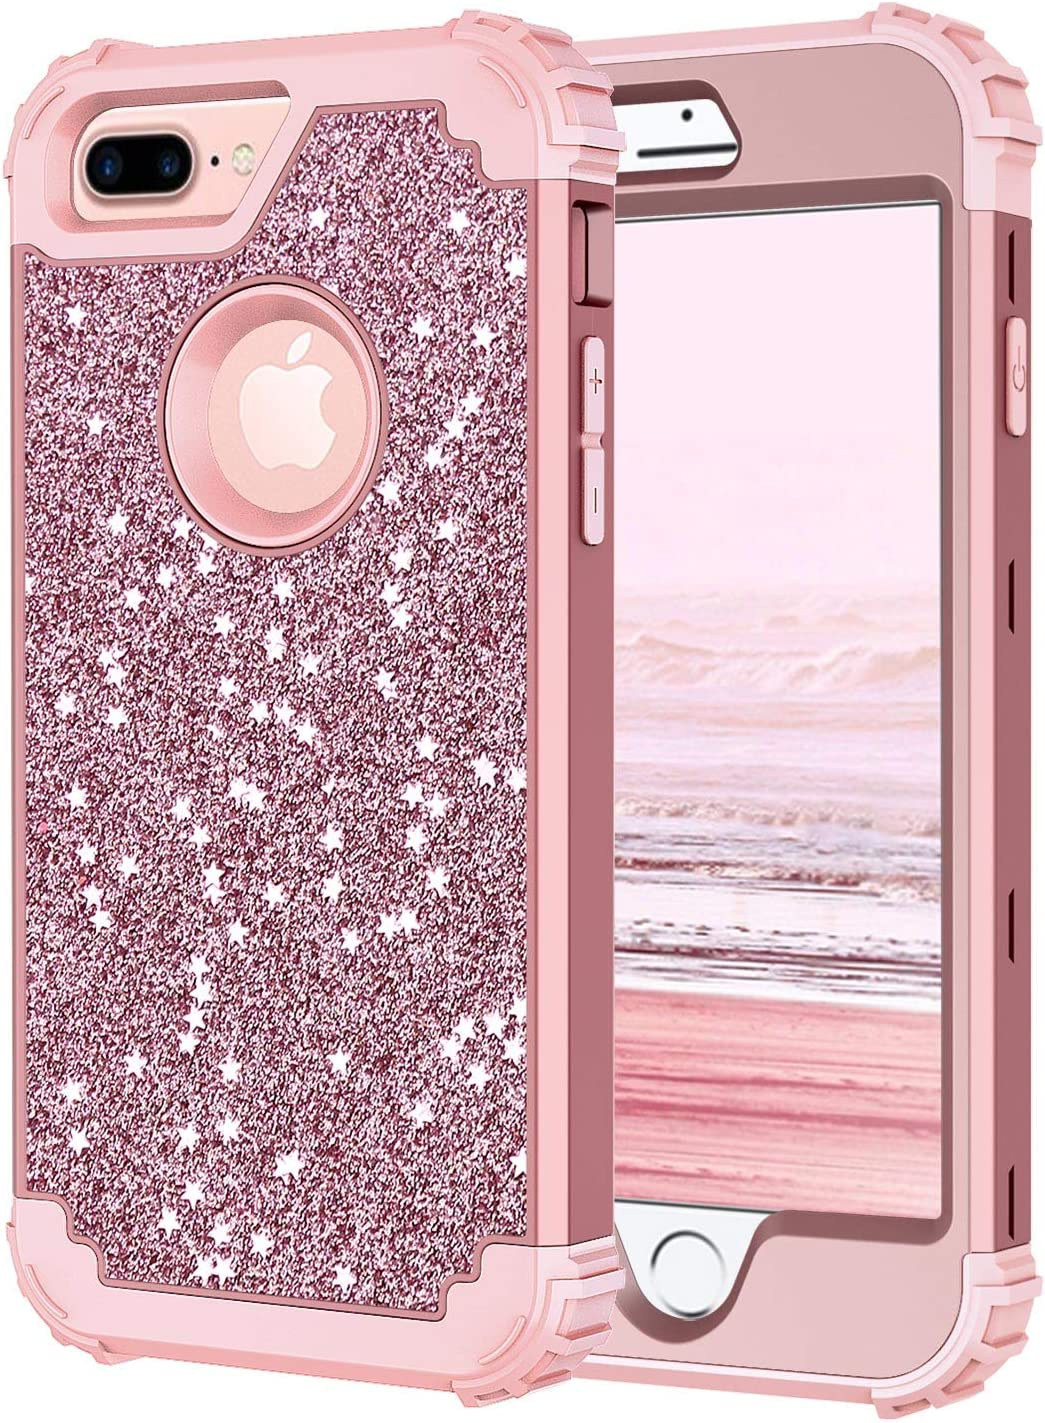 Hekodonk for iPhone 8 Plus/7 Plus Case,3 Layer Luxury Bling Sparkle Shiny Heavy Duty Shockproof Fullbody Protective Impact Hybrid Cover for Apple iPhone 8 Plus/iPhone 7 Plus Glitter Rose Gold